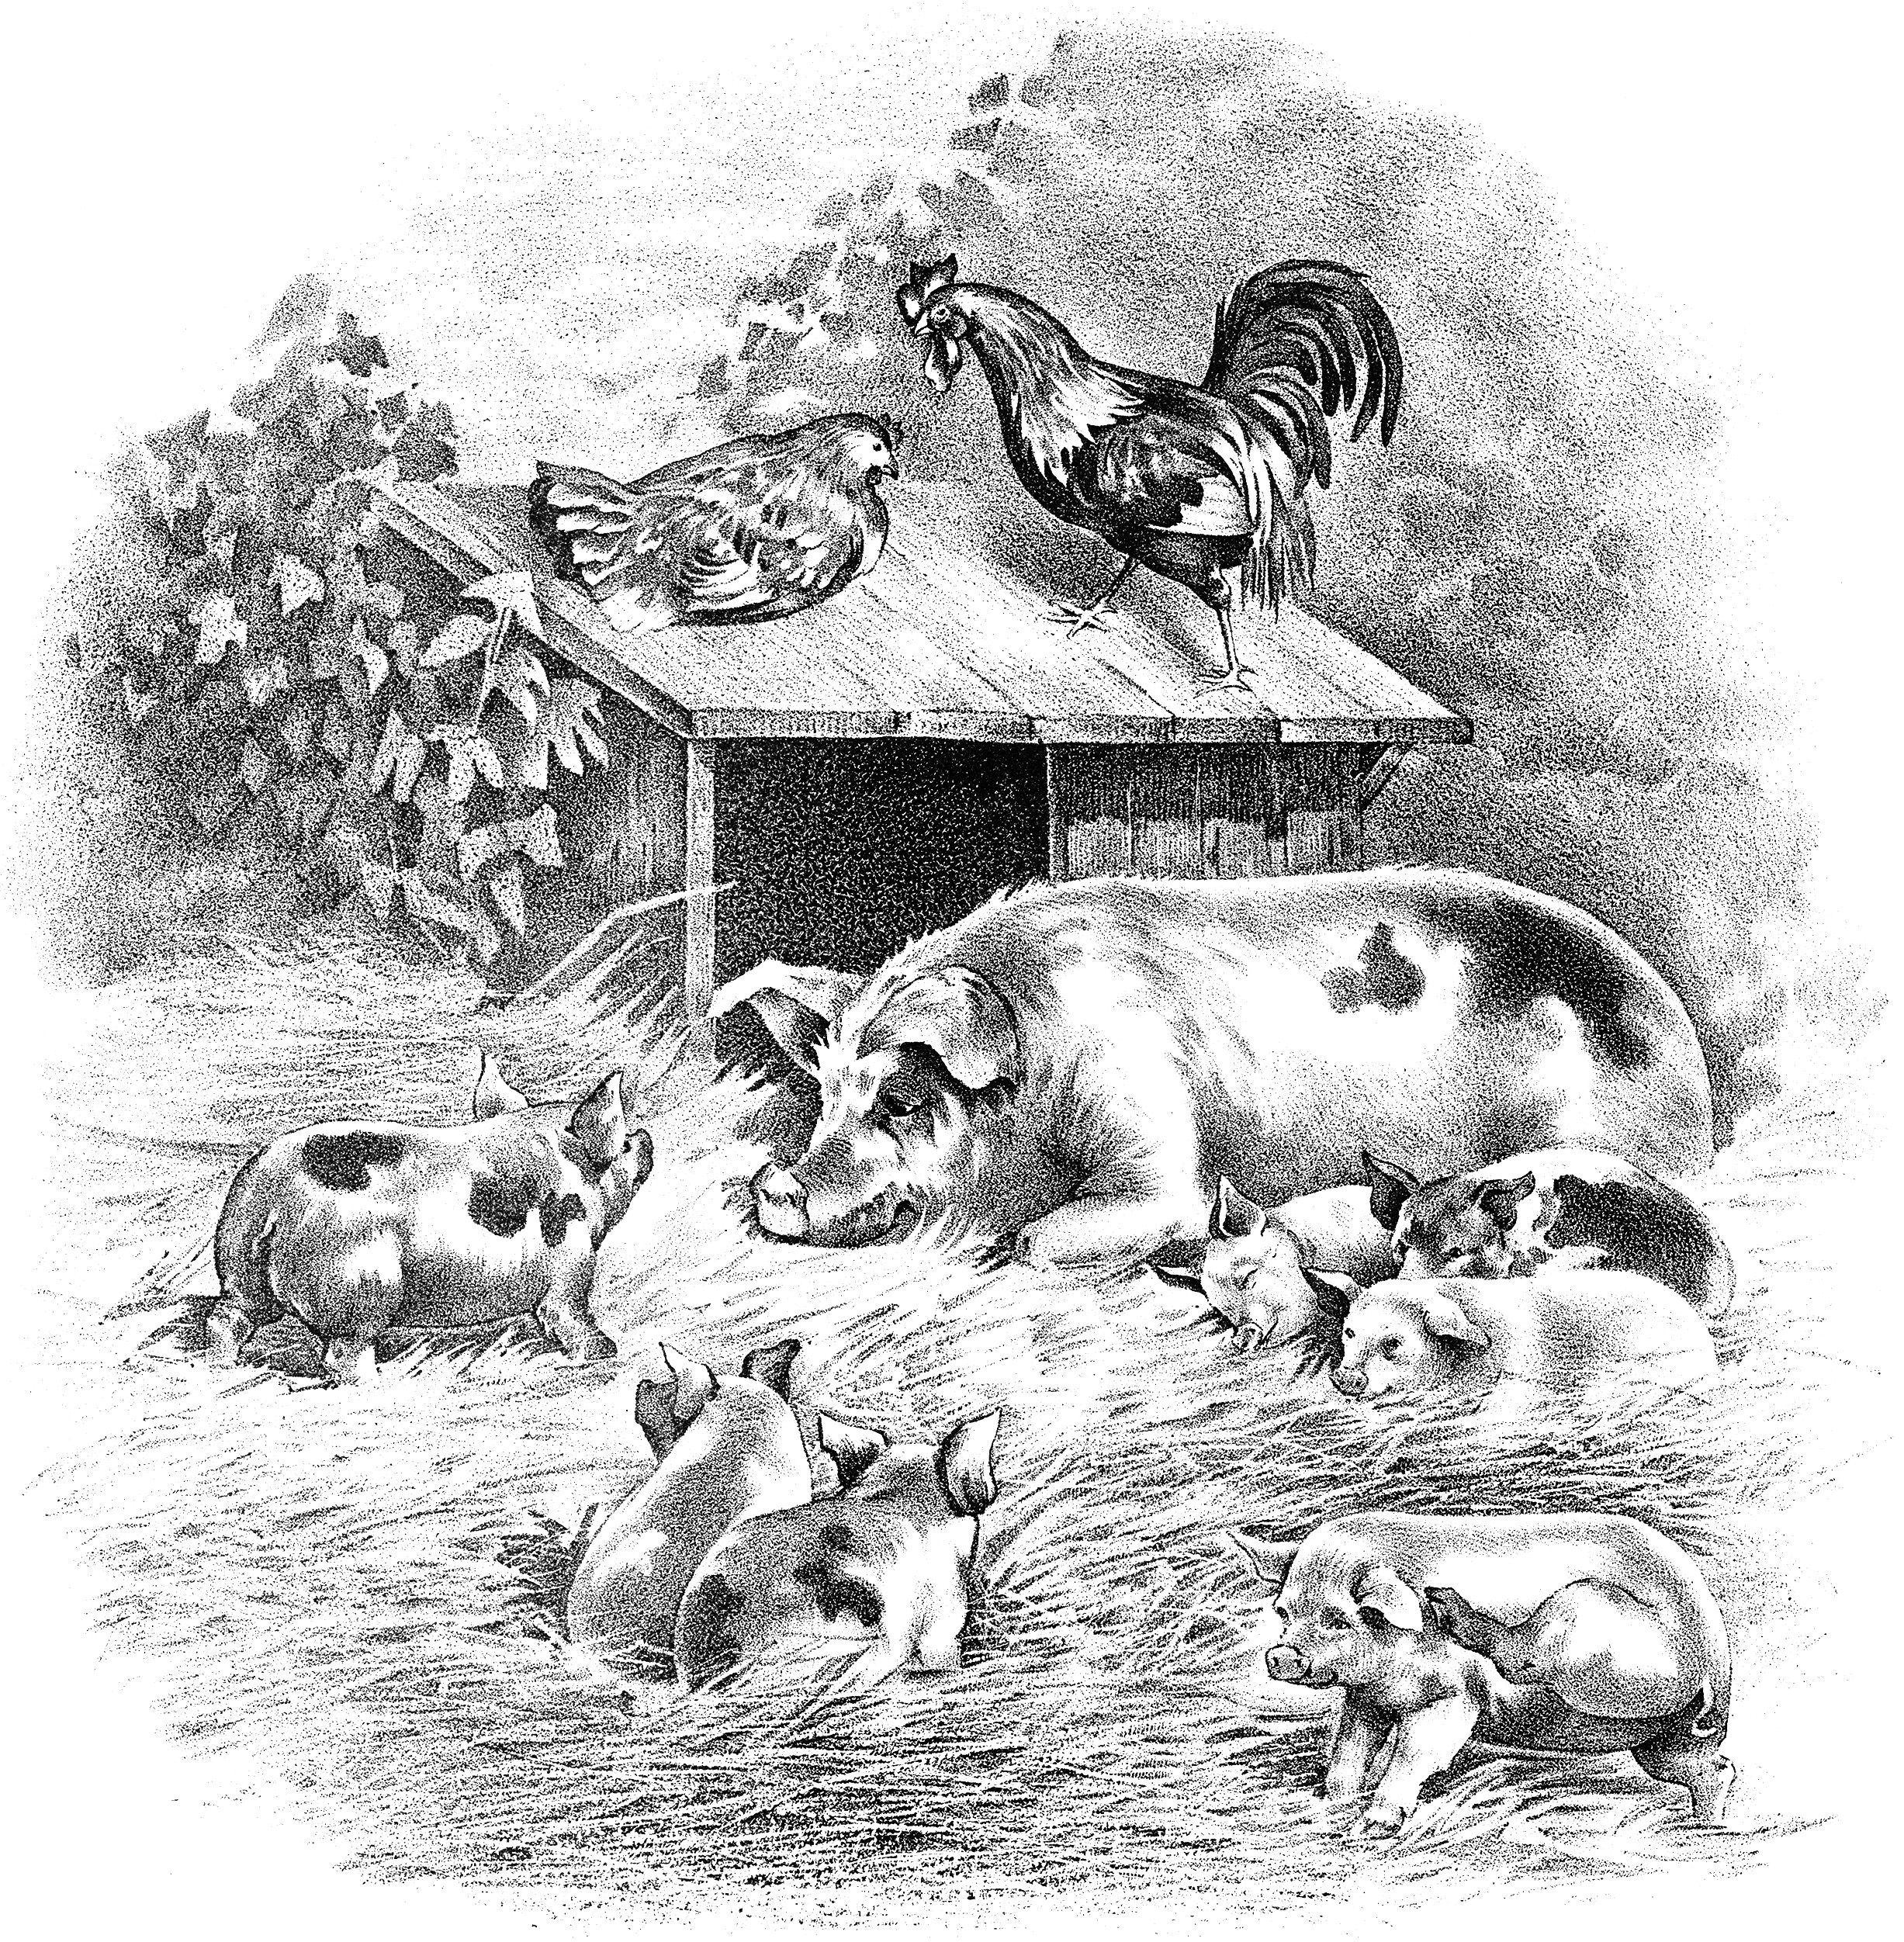 vintage farm animals image, pig piglet rooster hen illustration, black and white clip art, old fashioned farm graphic, farmyard scene illustration